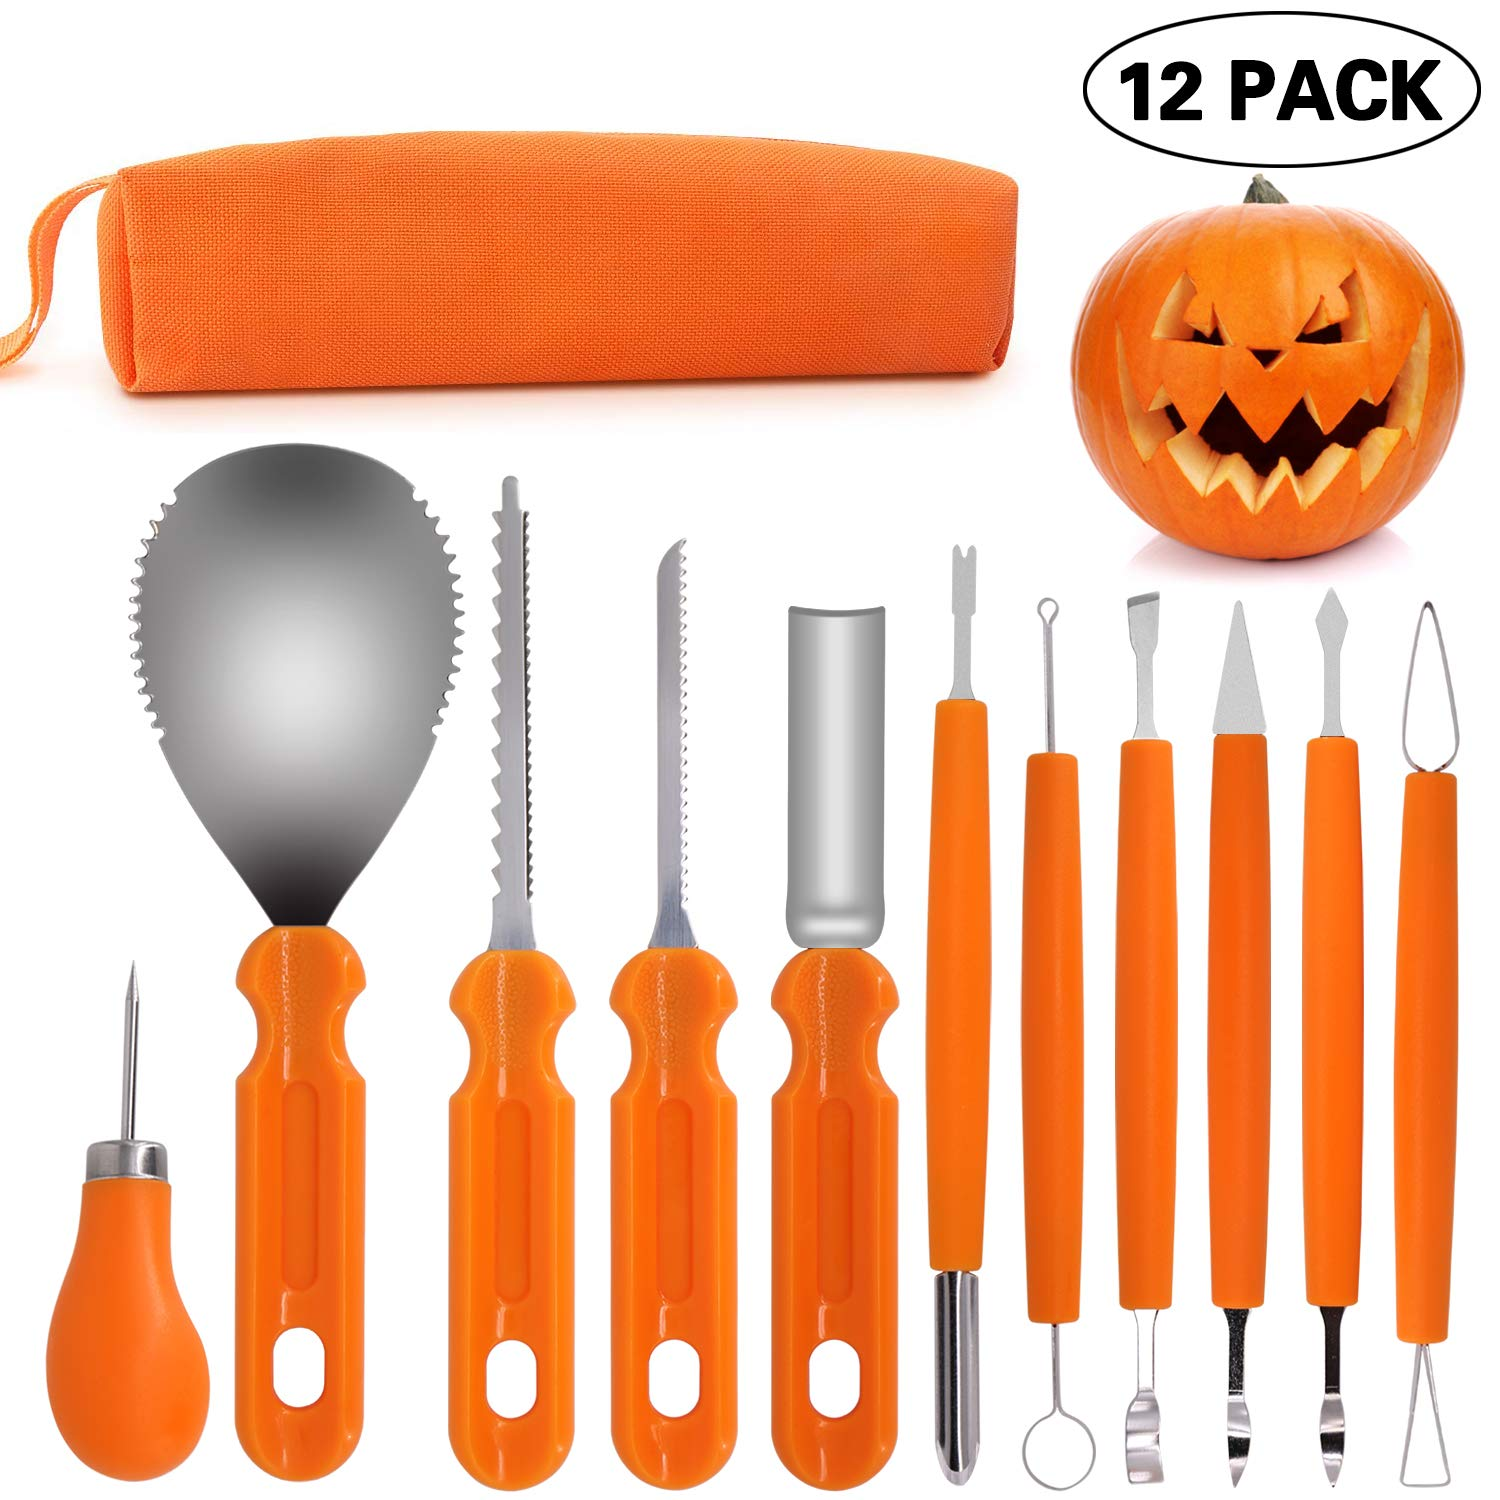 Pumpkin Carving Tool 12PCS - Heavy Duty Stainless Steel Pumpkin Cutting Tools Set for Halloween Decorations Jack-O-Lanterns with Carrying Bag by drclean